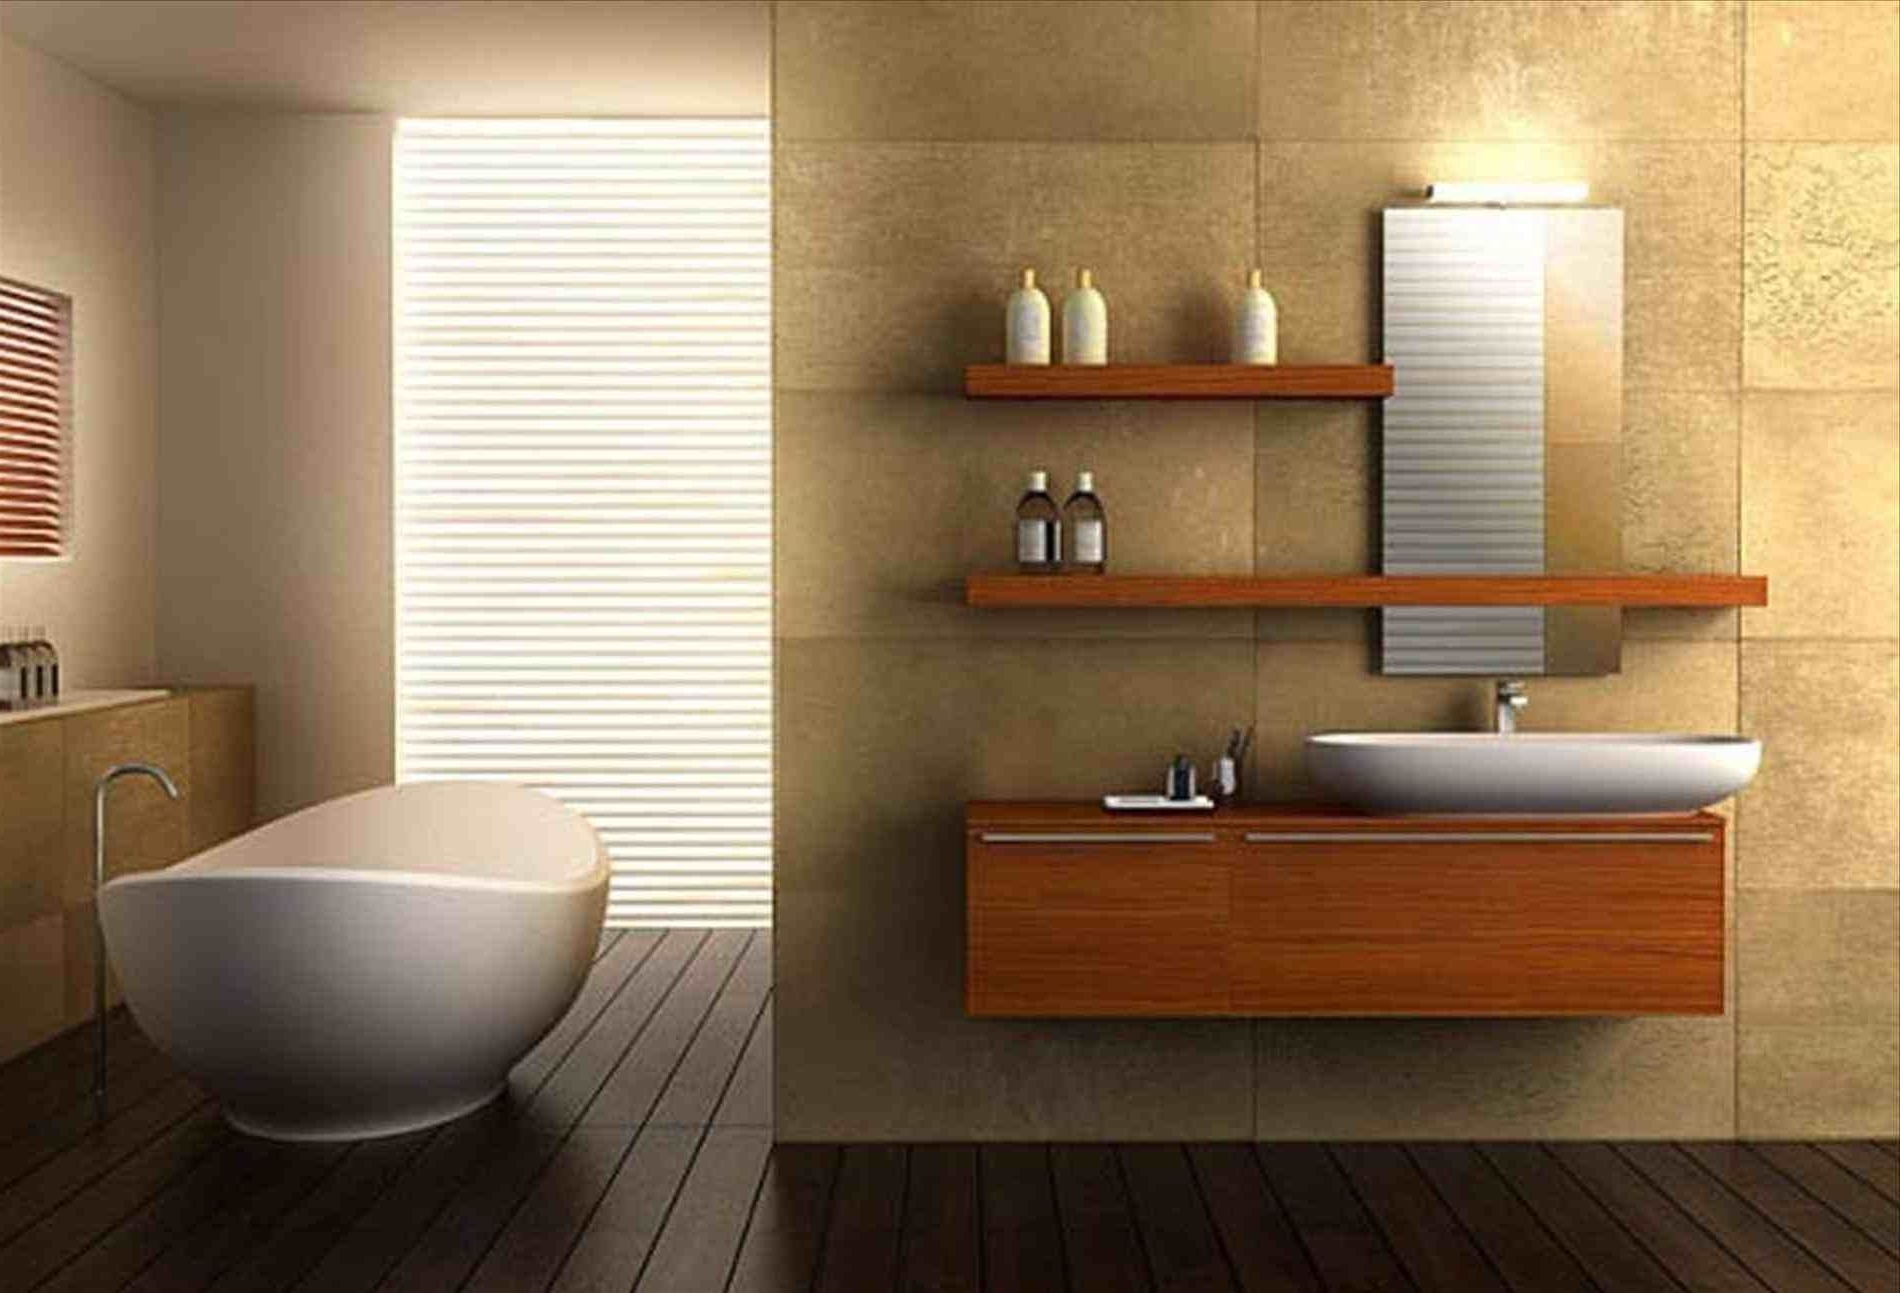 This Kerala Home Bathroom Tile Designs Gallery Of Simple 20+ Bathroom Tiles Designs Kerala Ideas